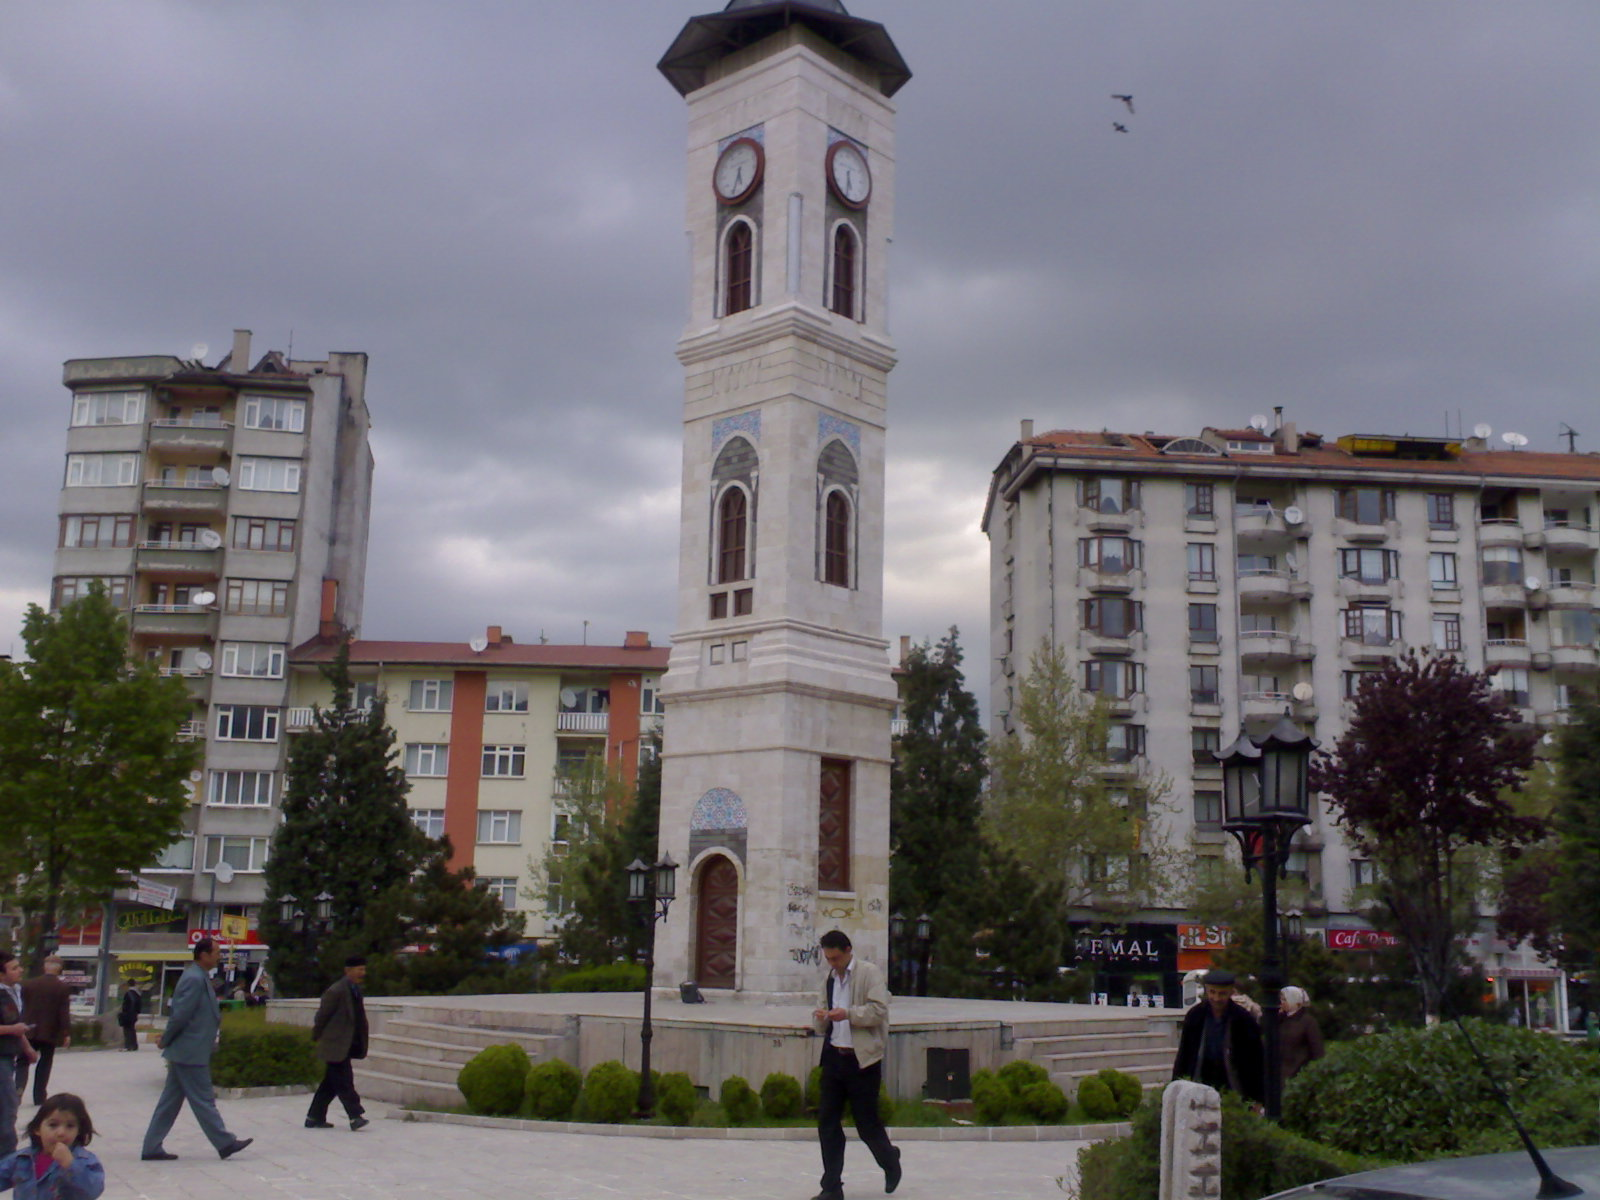 kutahya clock tower 1600 x 1200